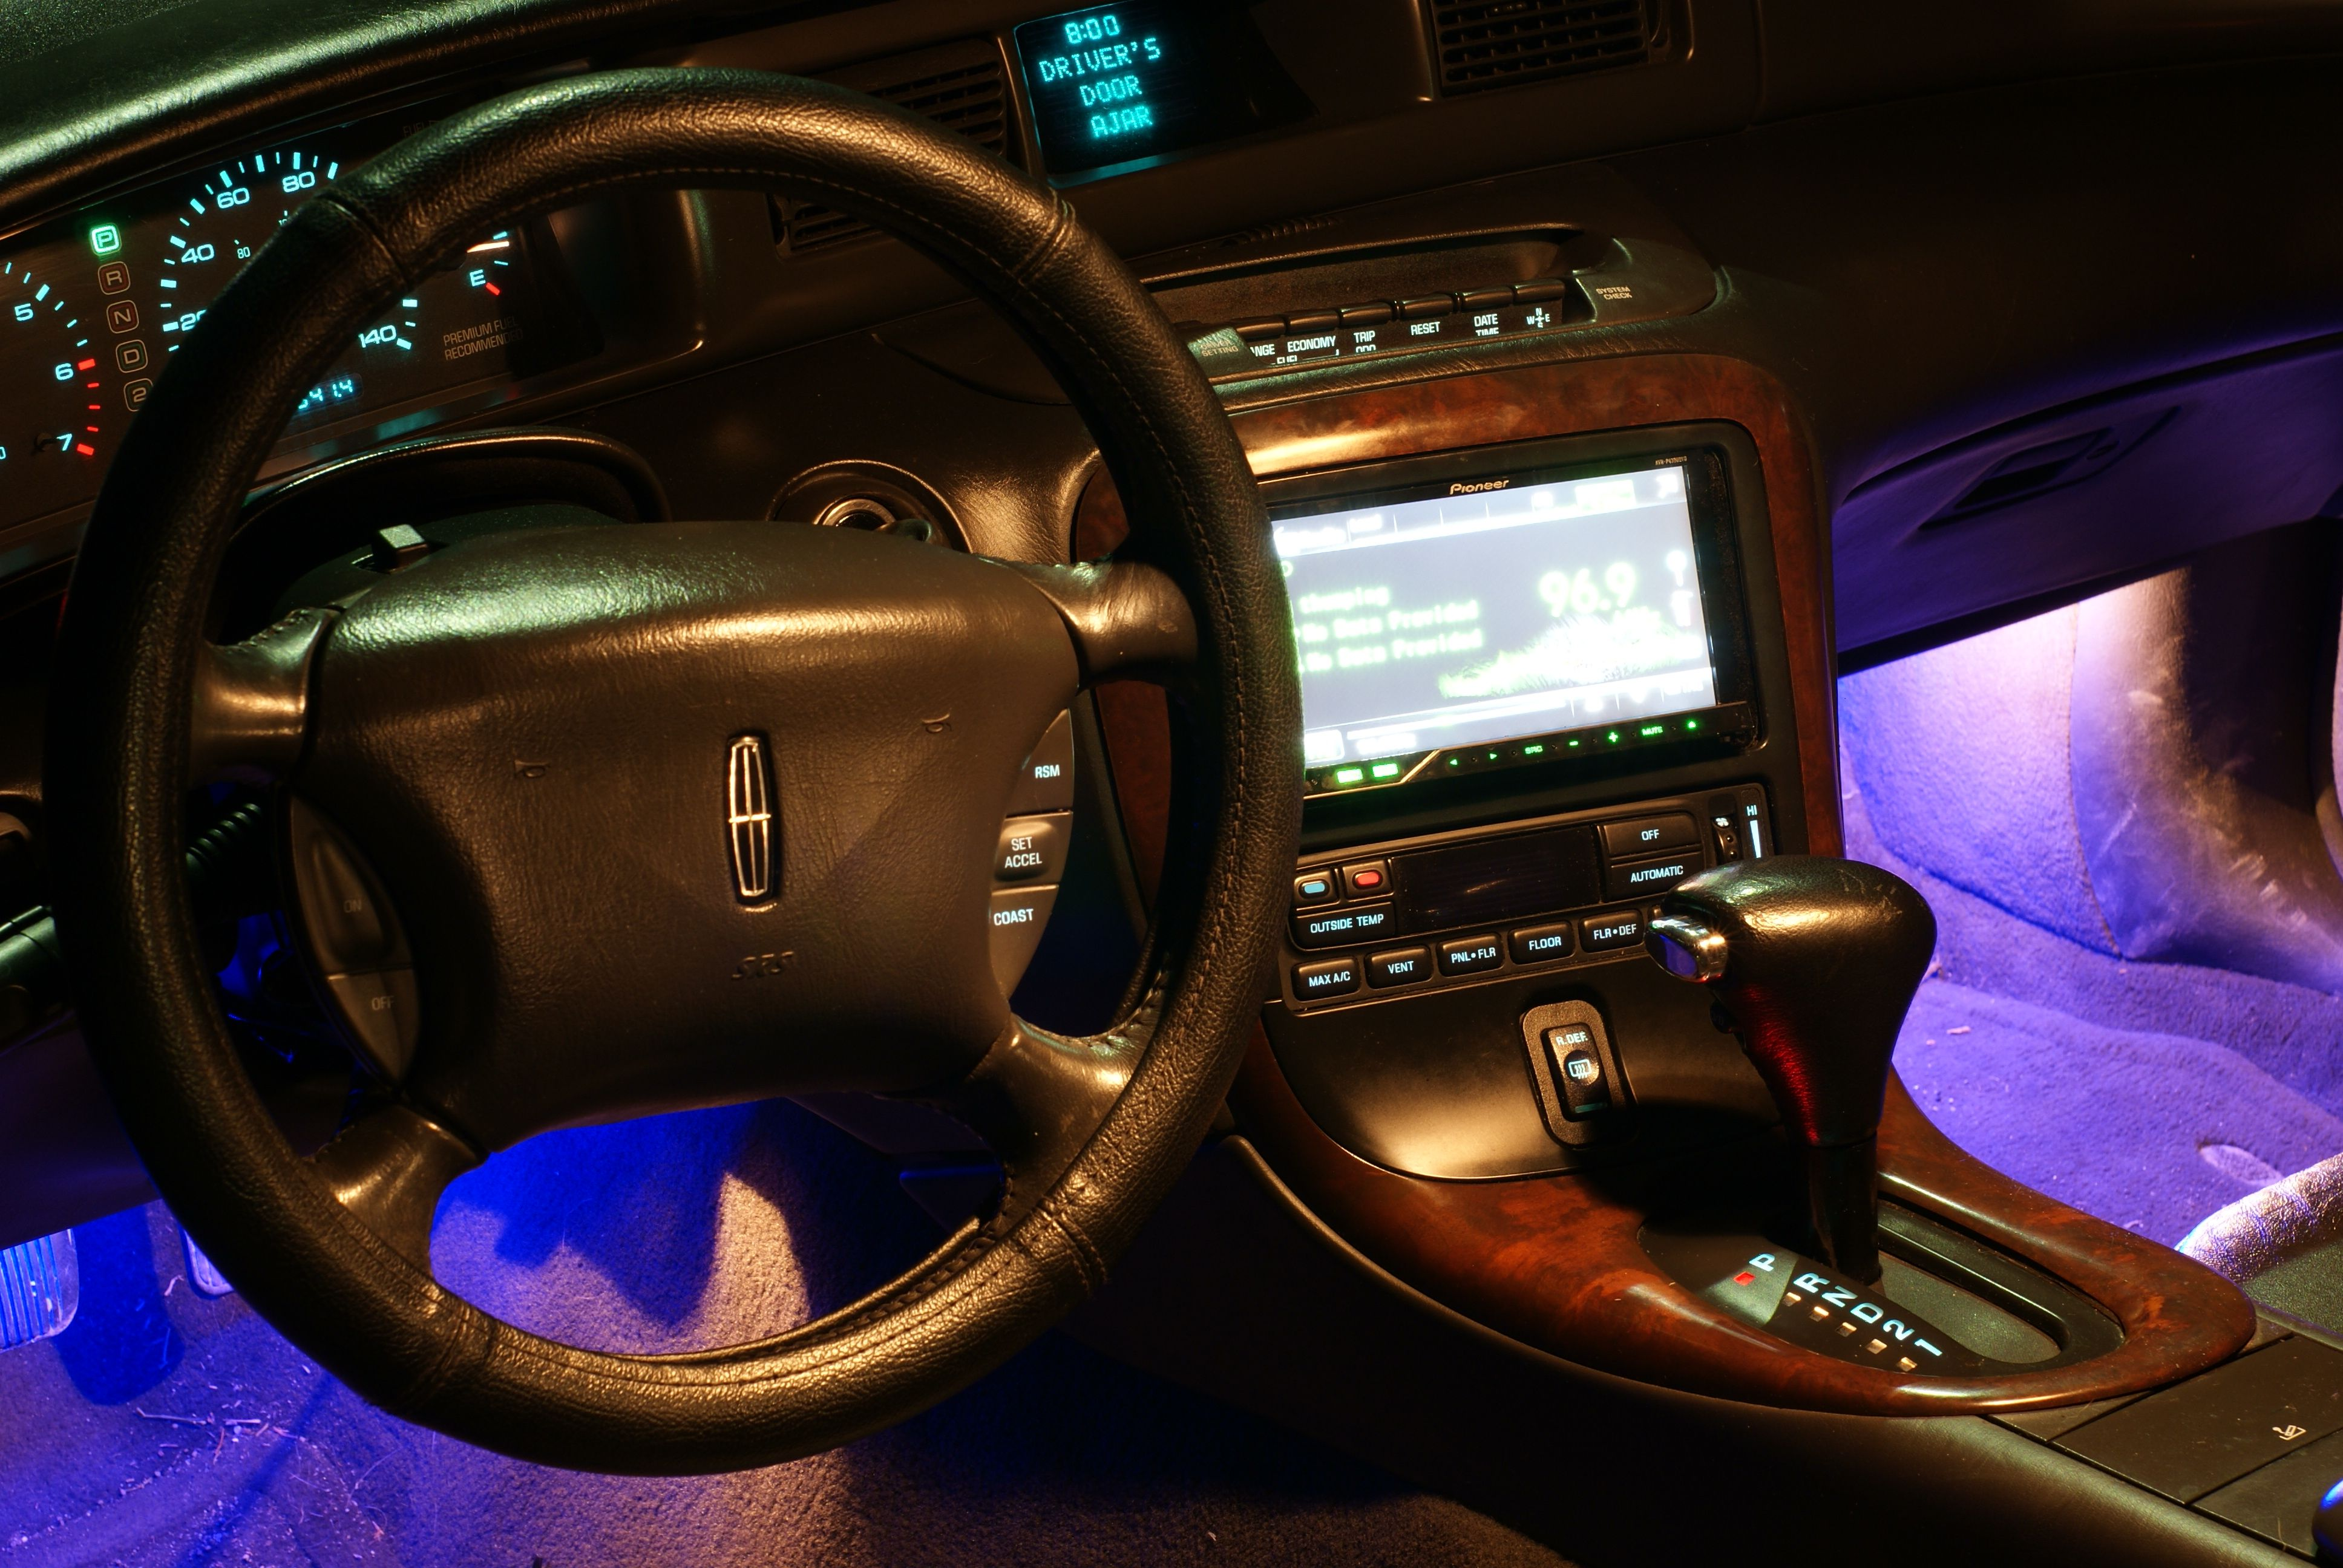 Lincoln mark viii interior beauty and style pinterest - Lincoln mark viii interior parts ...